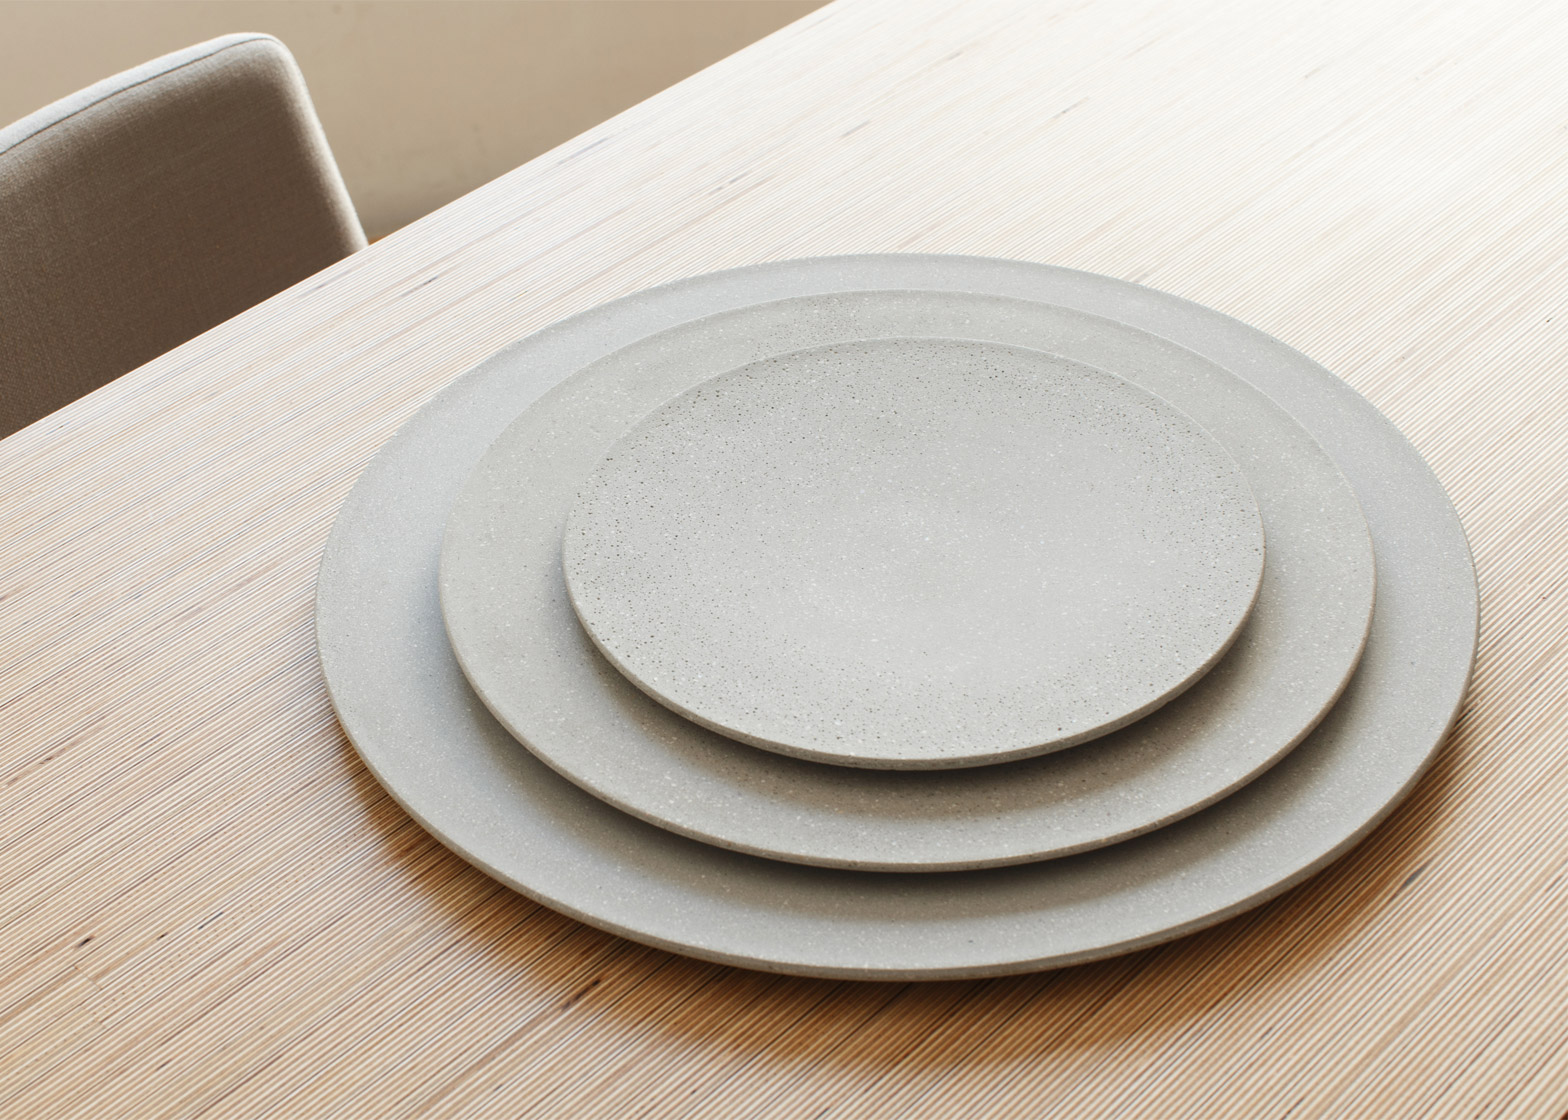 Tenue plates by La Selva